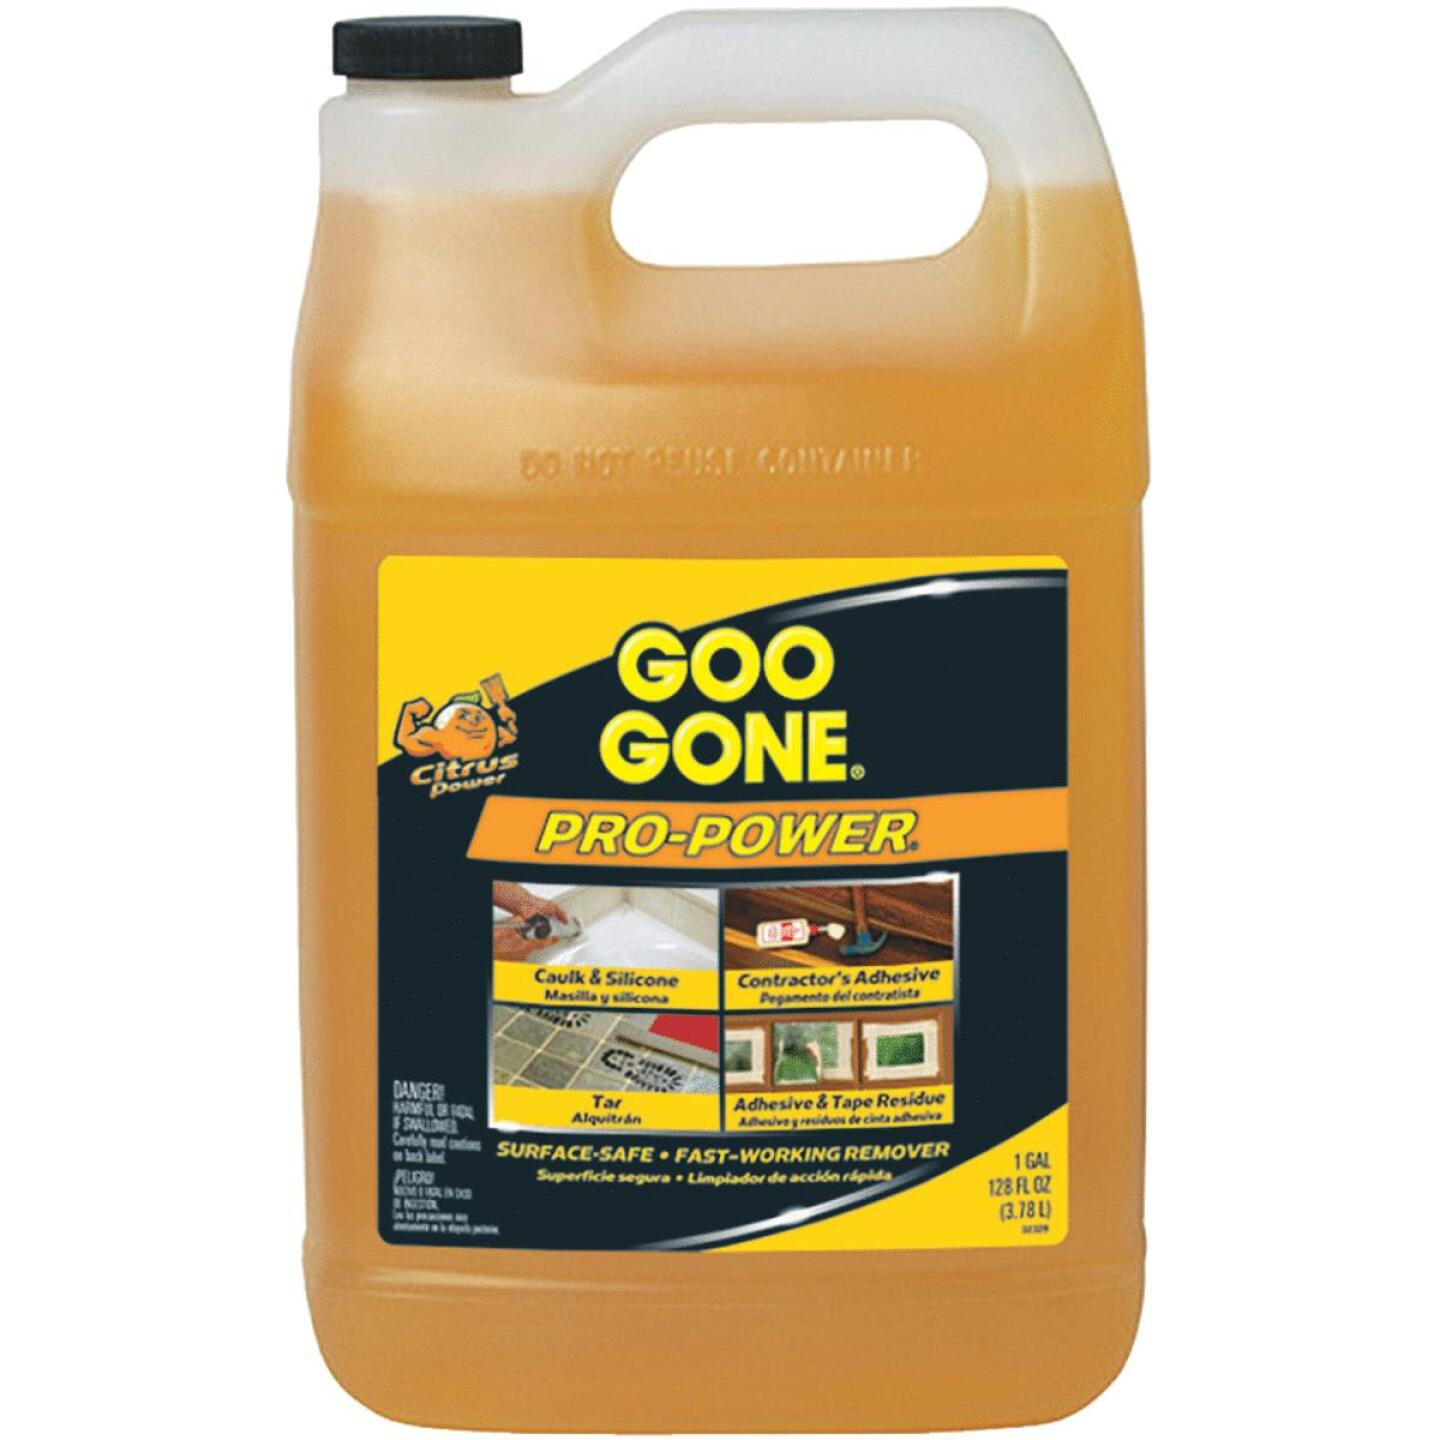 Goo Gone 1 Gal. Pro-Power Adhesive Remover Image 94